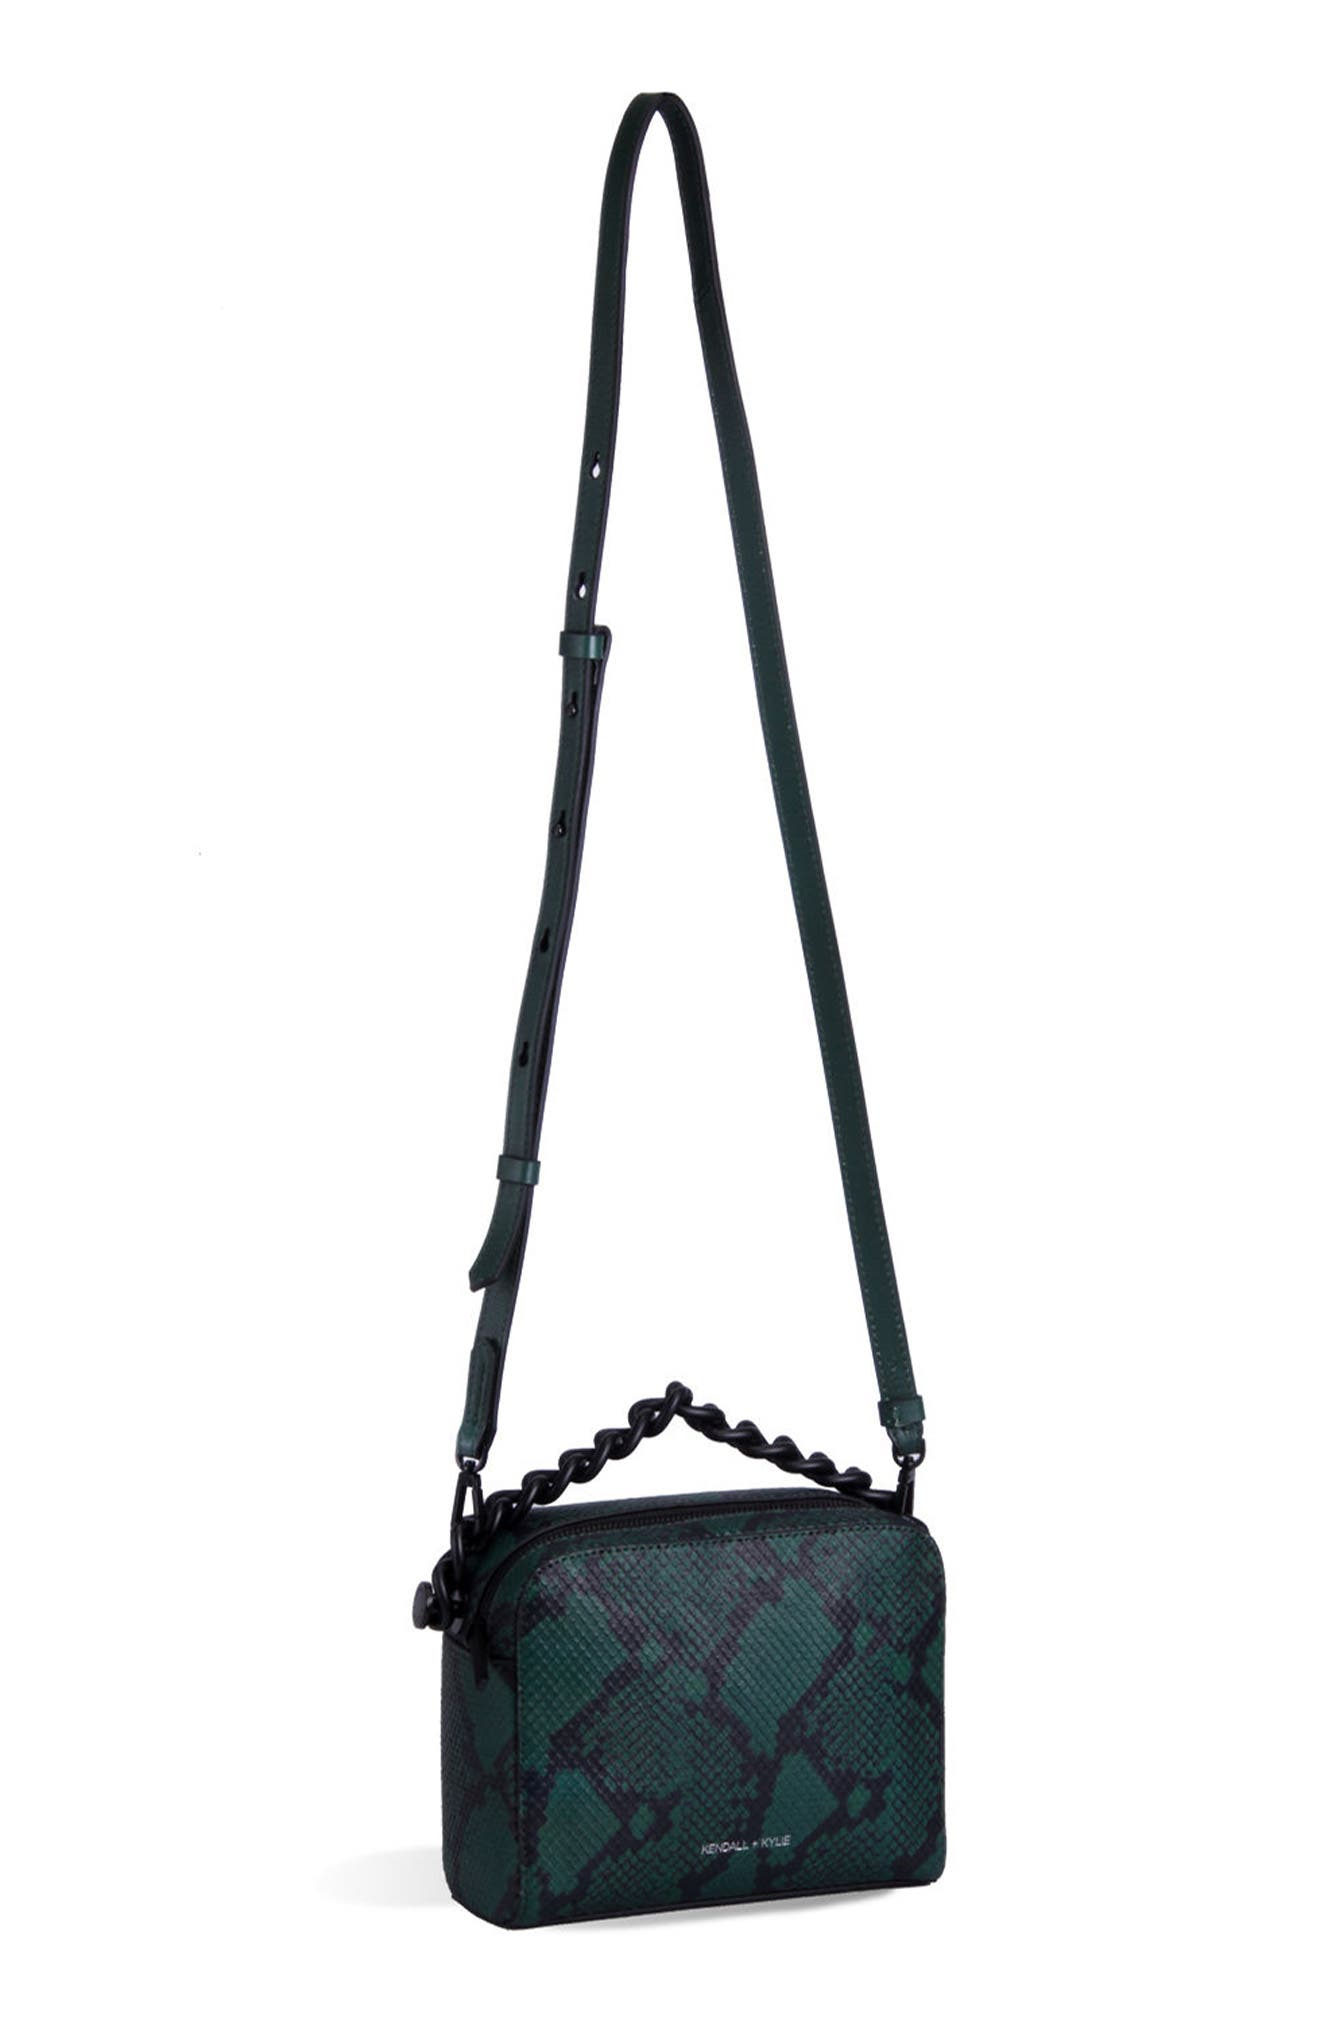 Lucy Leather Crossbody Bag,                         Main,                         color, Dark Green Snake